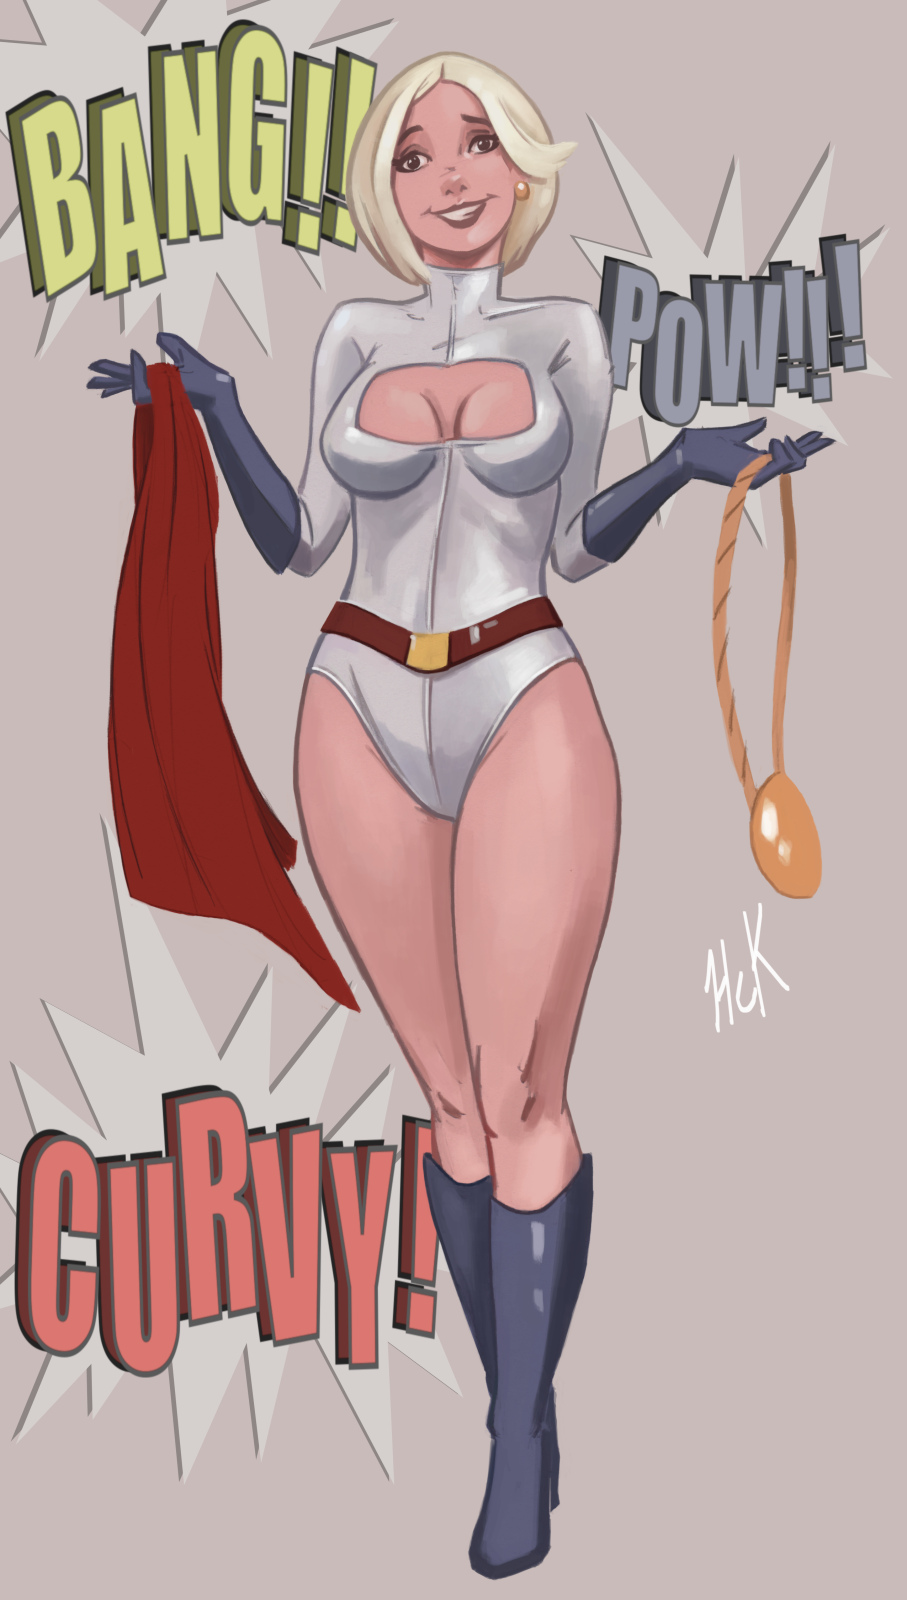 Powergirl BANG POW CURVY by artist2point5